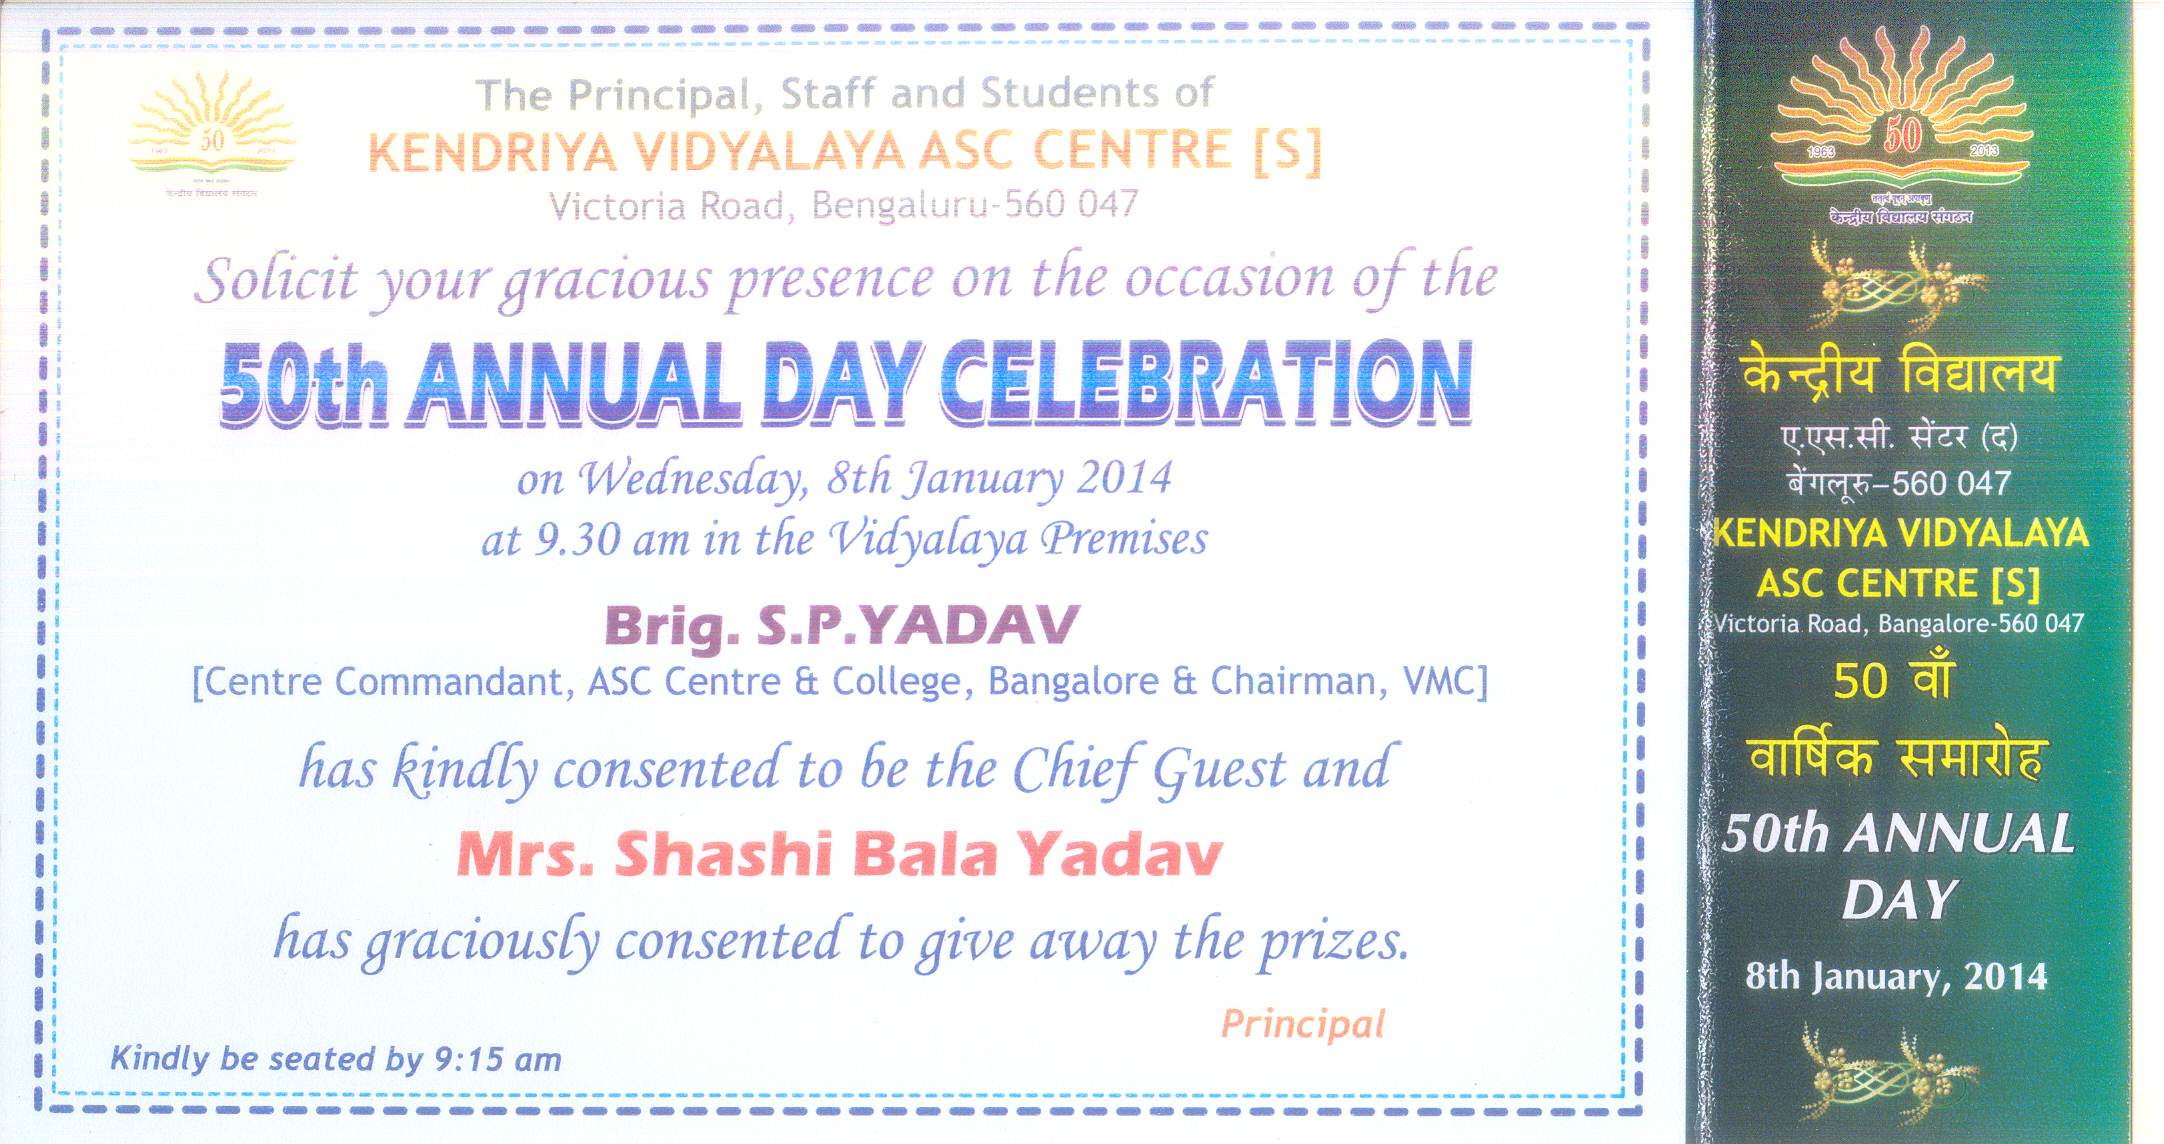 Annual day celebrations at kv asc center s blr on the 8th of jan annual day celebrations at kv asc center s blr on the 8th of jan at 930am at the school premises stopboris Choice Image